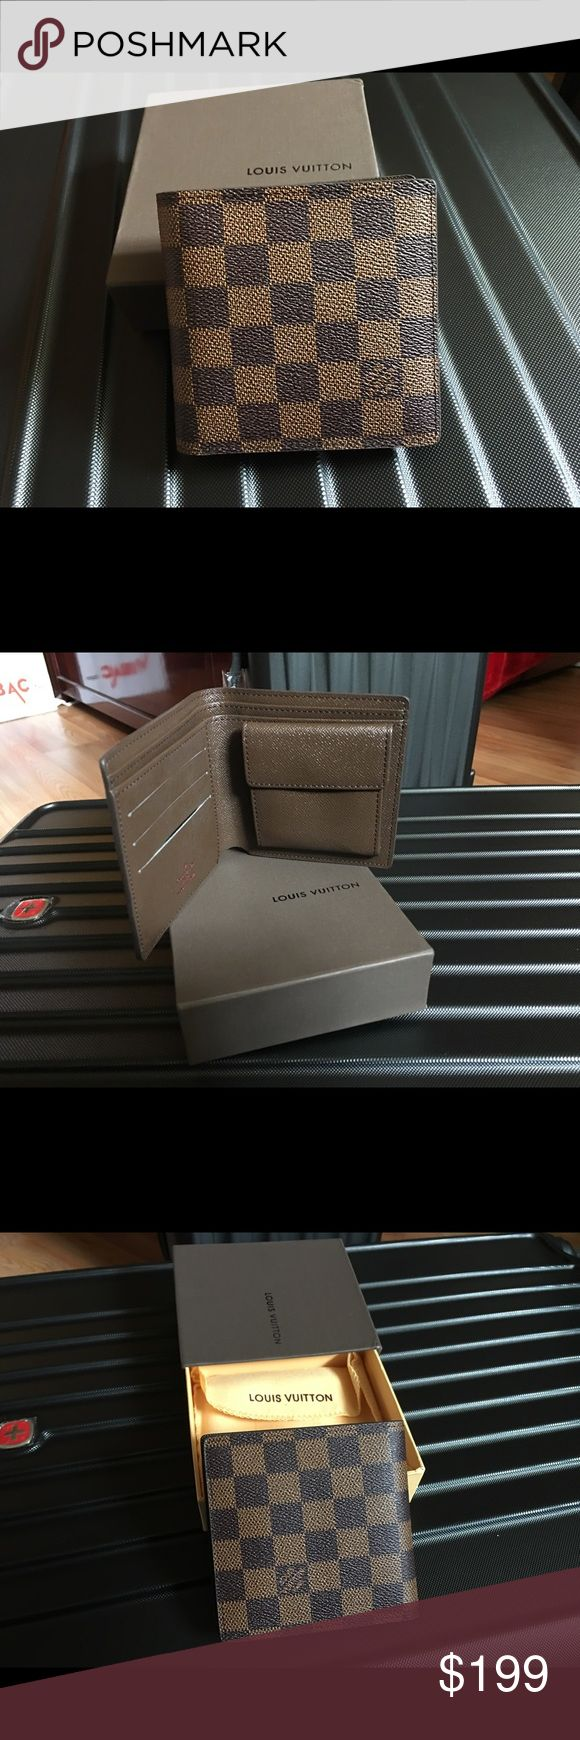 Louis Vuitton men's wallet Gift from girlfriend didn't like it as much only used a couple times. Very new condition comes with box. Louis Vuitton Bags Wallets